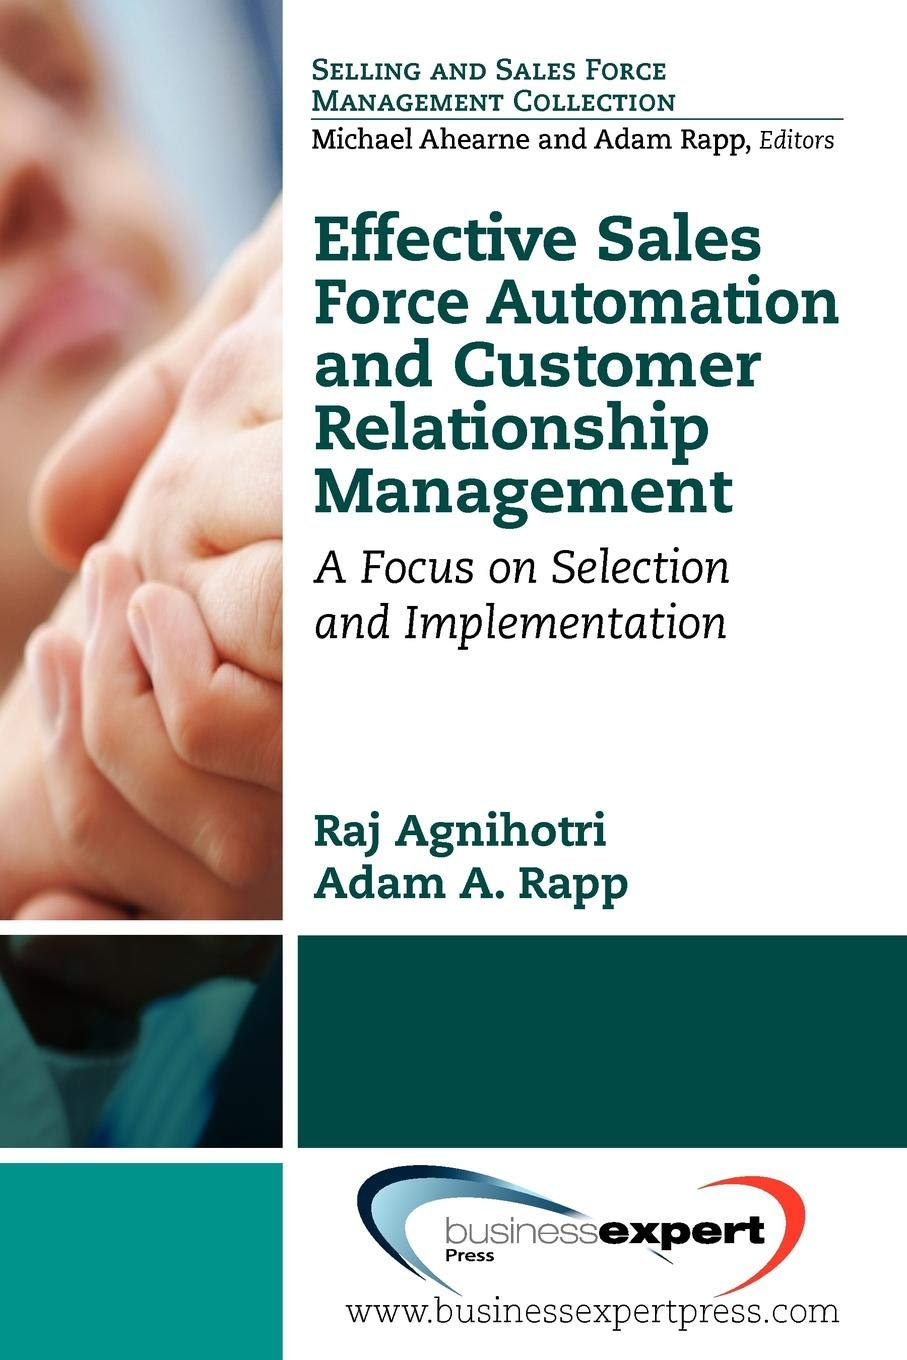 Effective Sales Force Automation and Customer Relationship